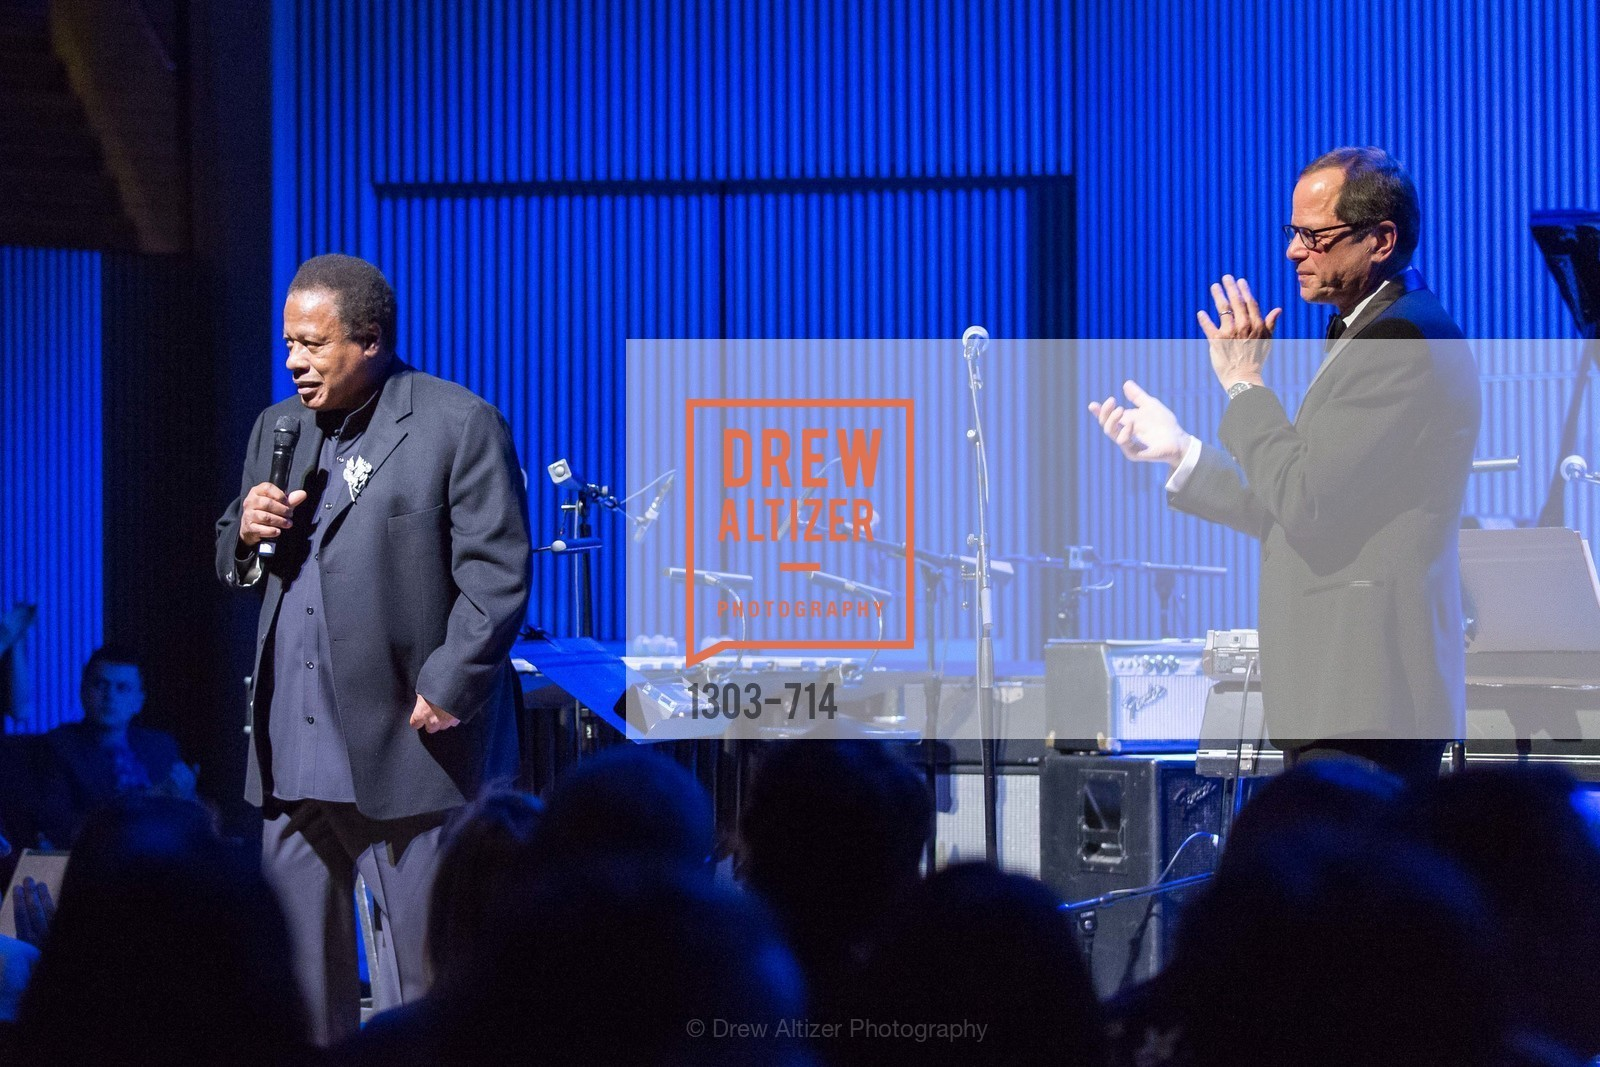 Wayne Shorter, Randall Kline, SFJAZZ Gala 2015 Honors Joni Mitchell with Lifetime Achievement Award, US, May 9th, 2015,Drew Altizer, Drew Altizer Photography, full-service agency, private events, San Francisco photographer, photographer california